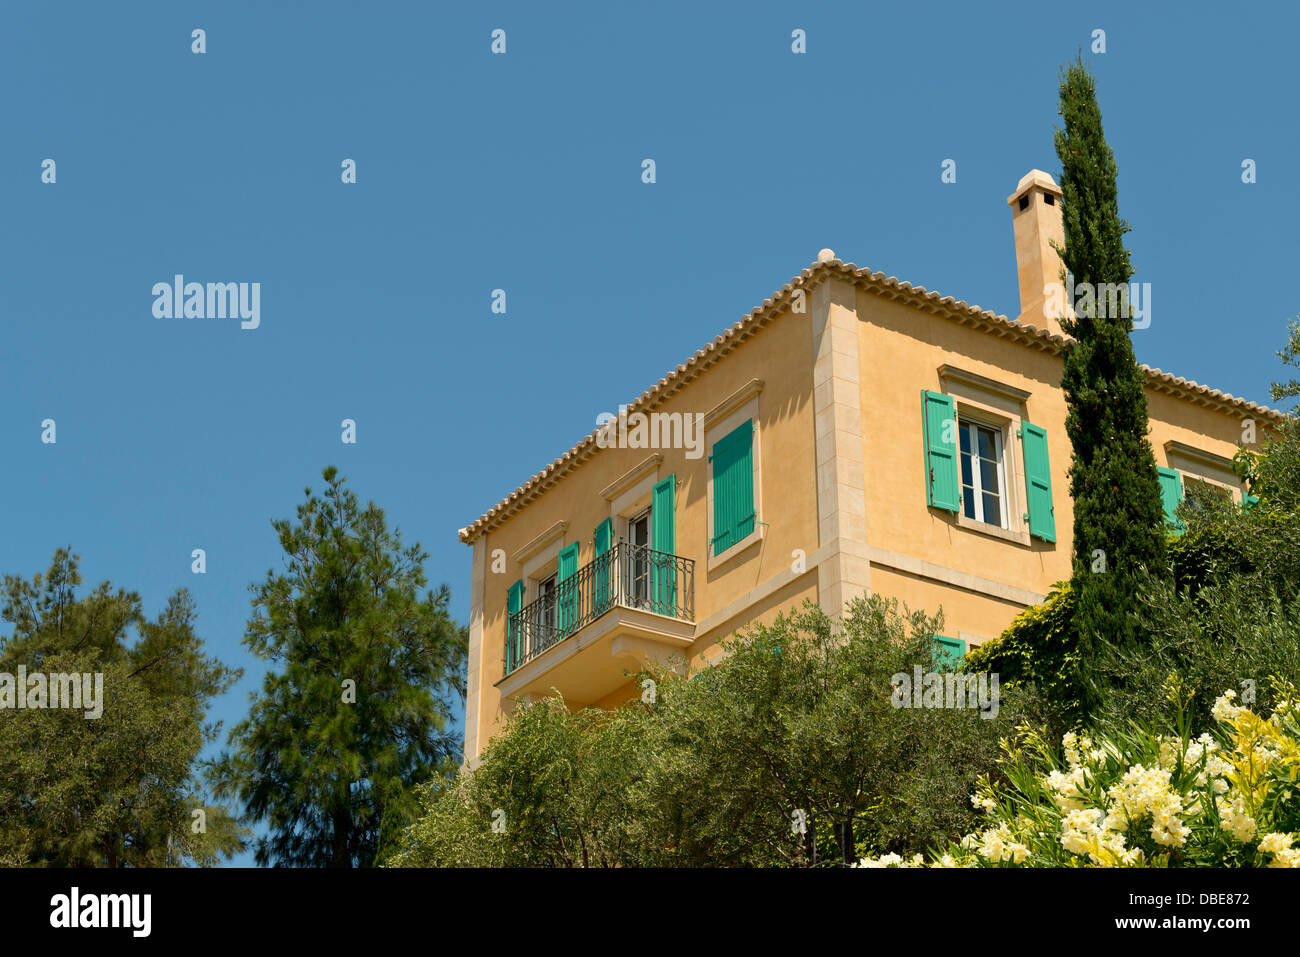 Sandy coloured house with green shutters on the Ionian Island of Kefalonia, Greece - Stock Image